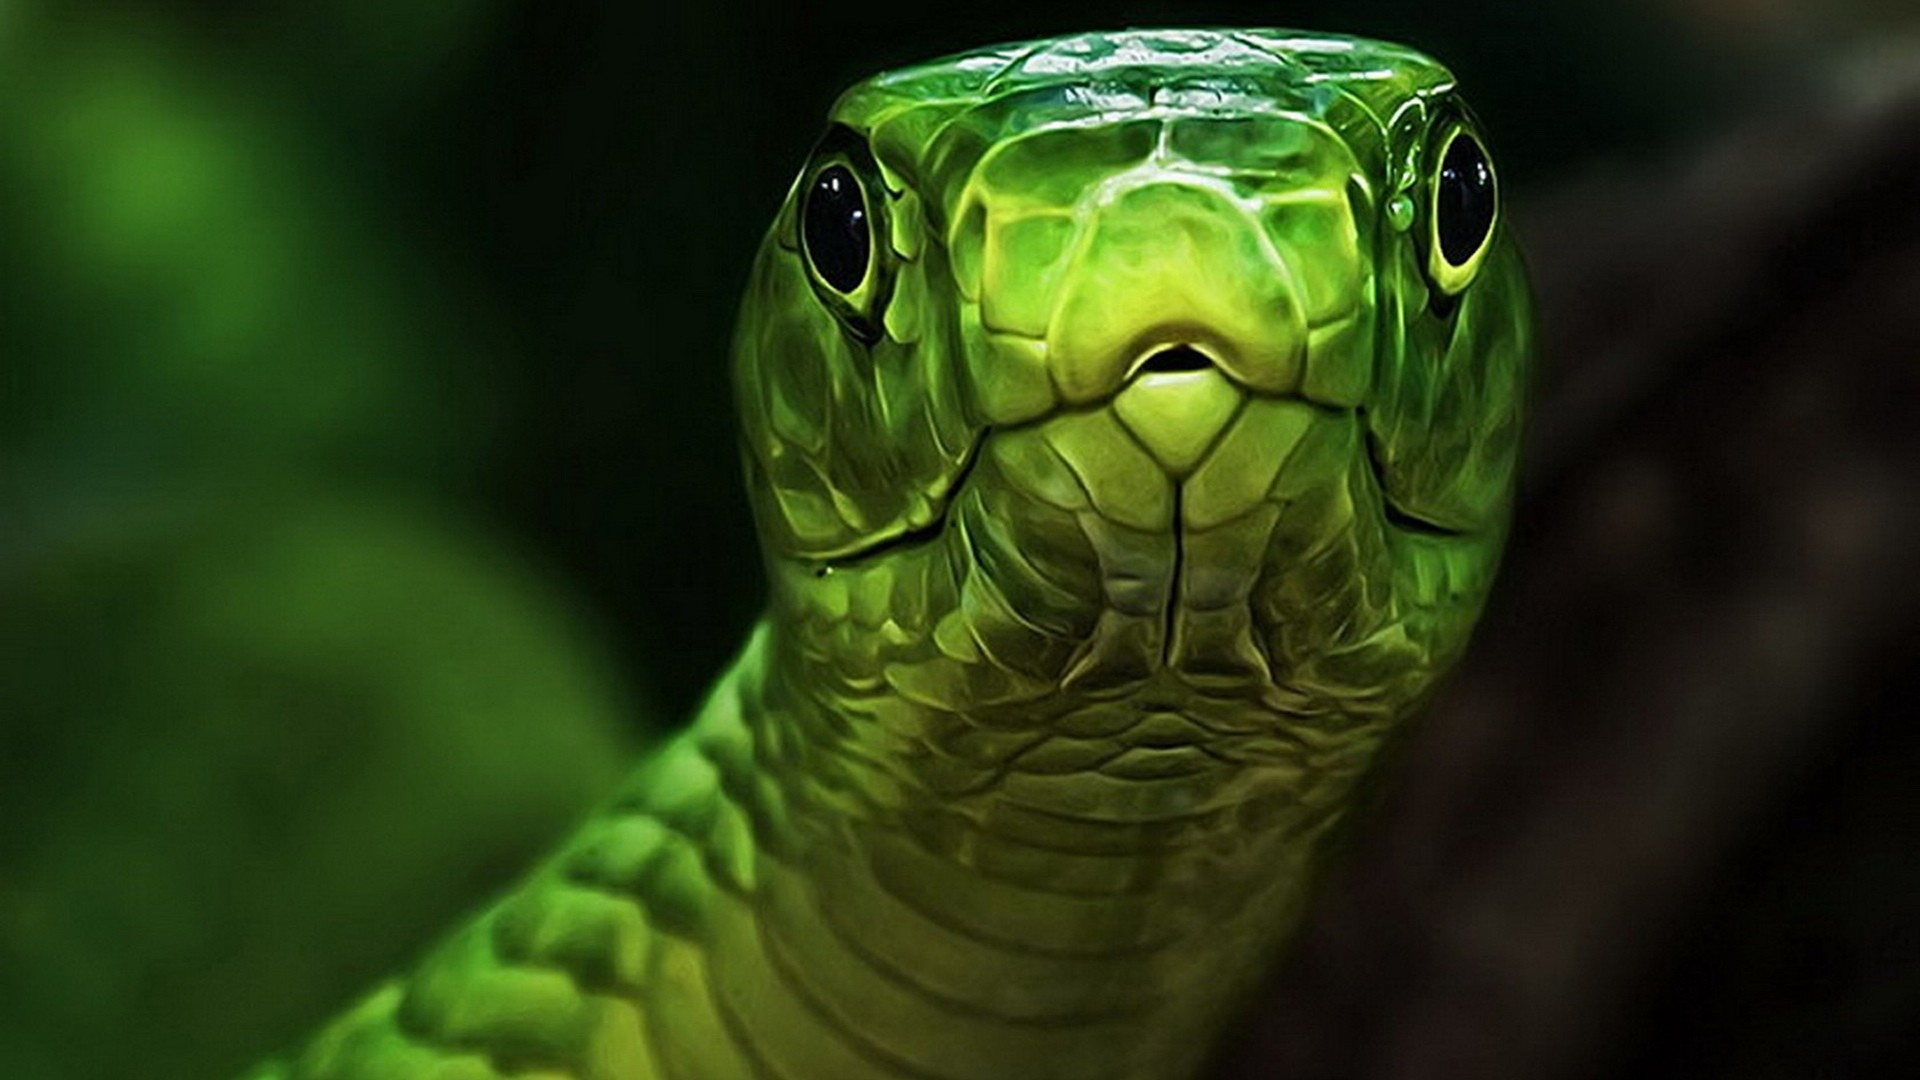 What you lookin at green snake wallpaper hd wide - Green snake hd wallpaper ...